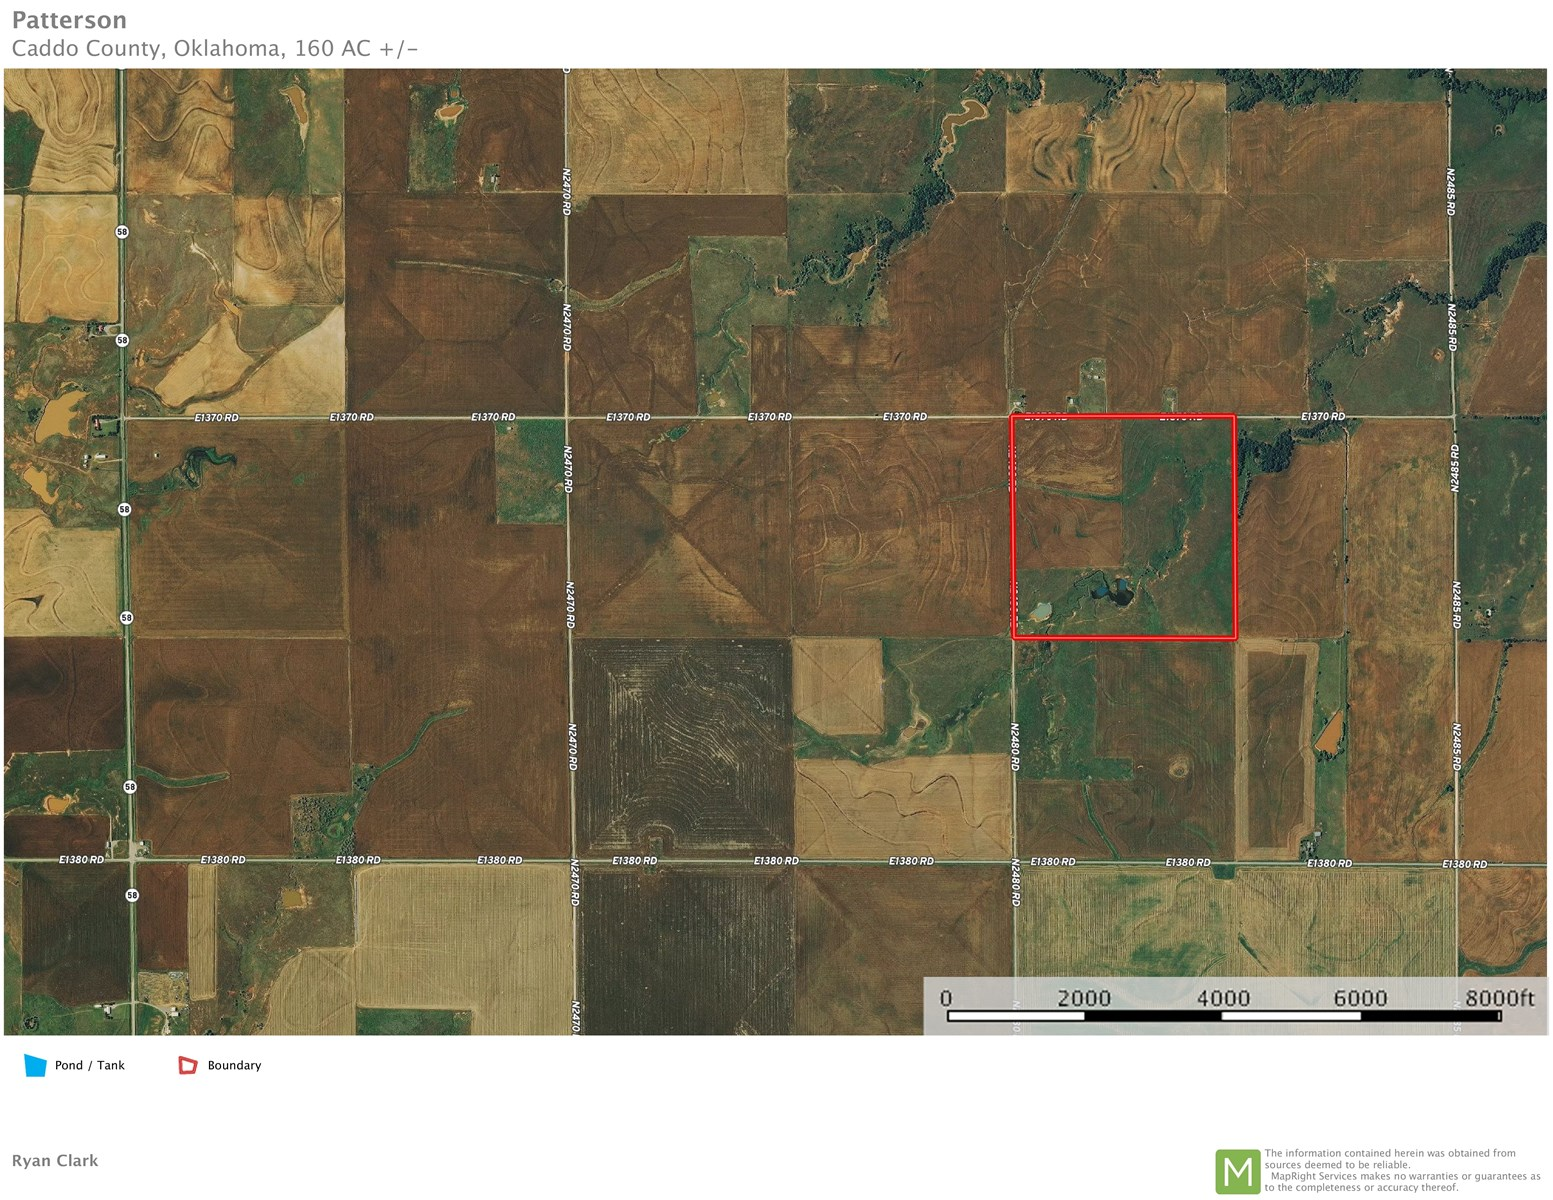 Oklahoma Farm/Ranch Land for Sale - Caddo County ±160 Acres